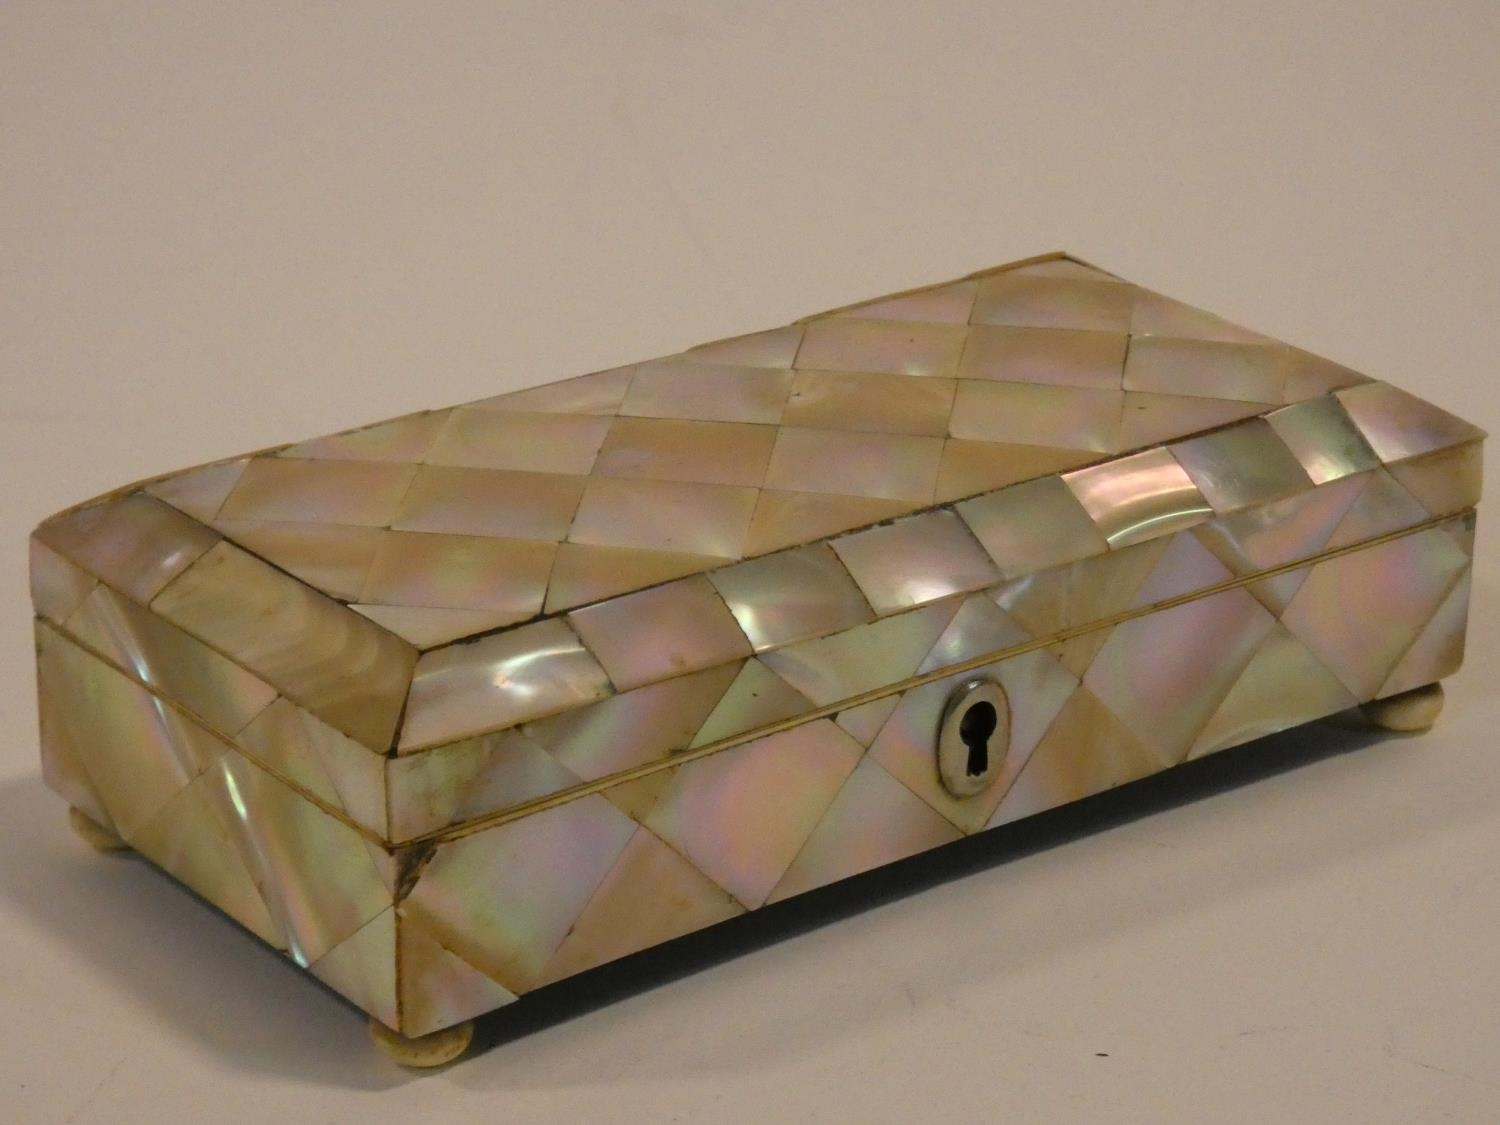 A 19th century parquetry inlaid mother of pearl jewellery casket on ivory bun feet. Missing key. H. - Image 3 of 5